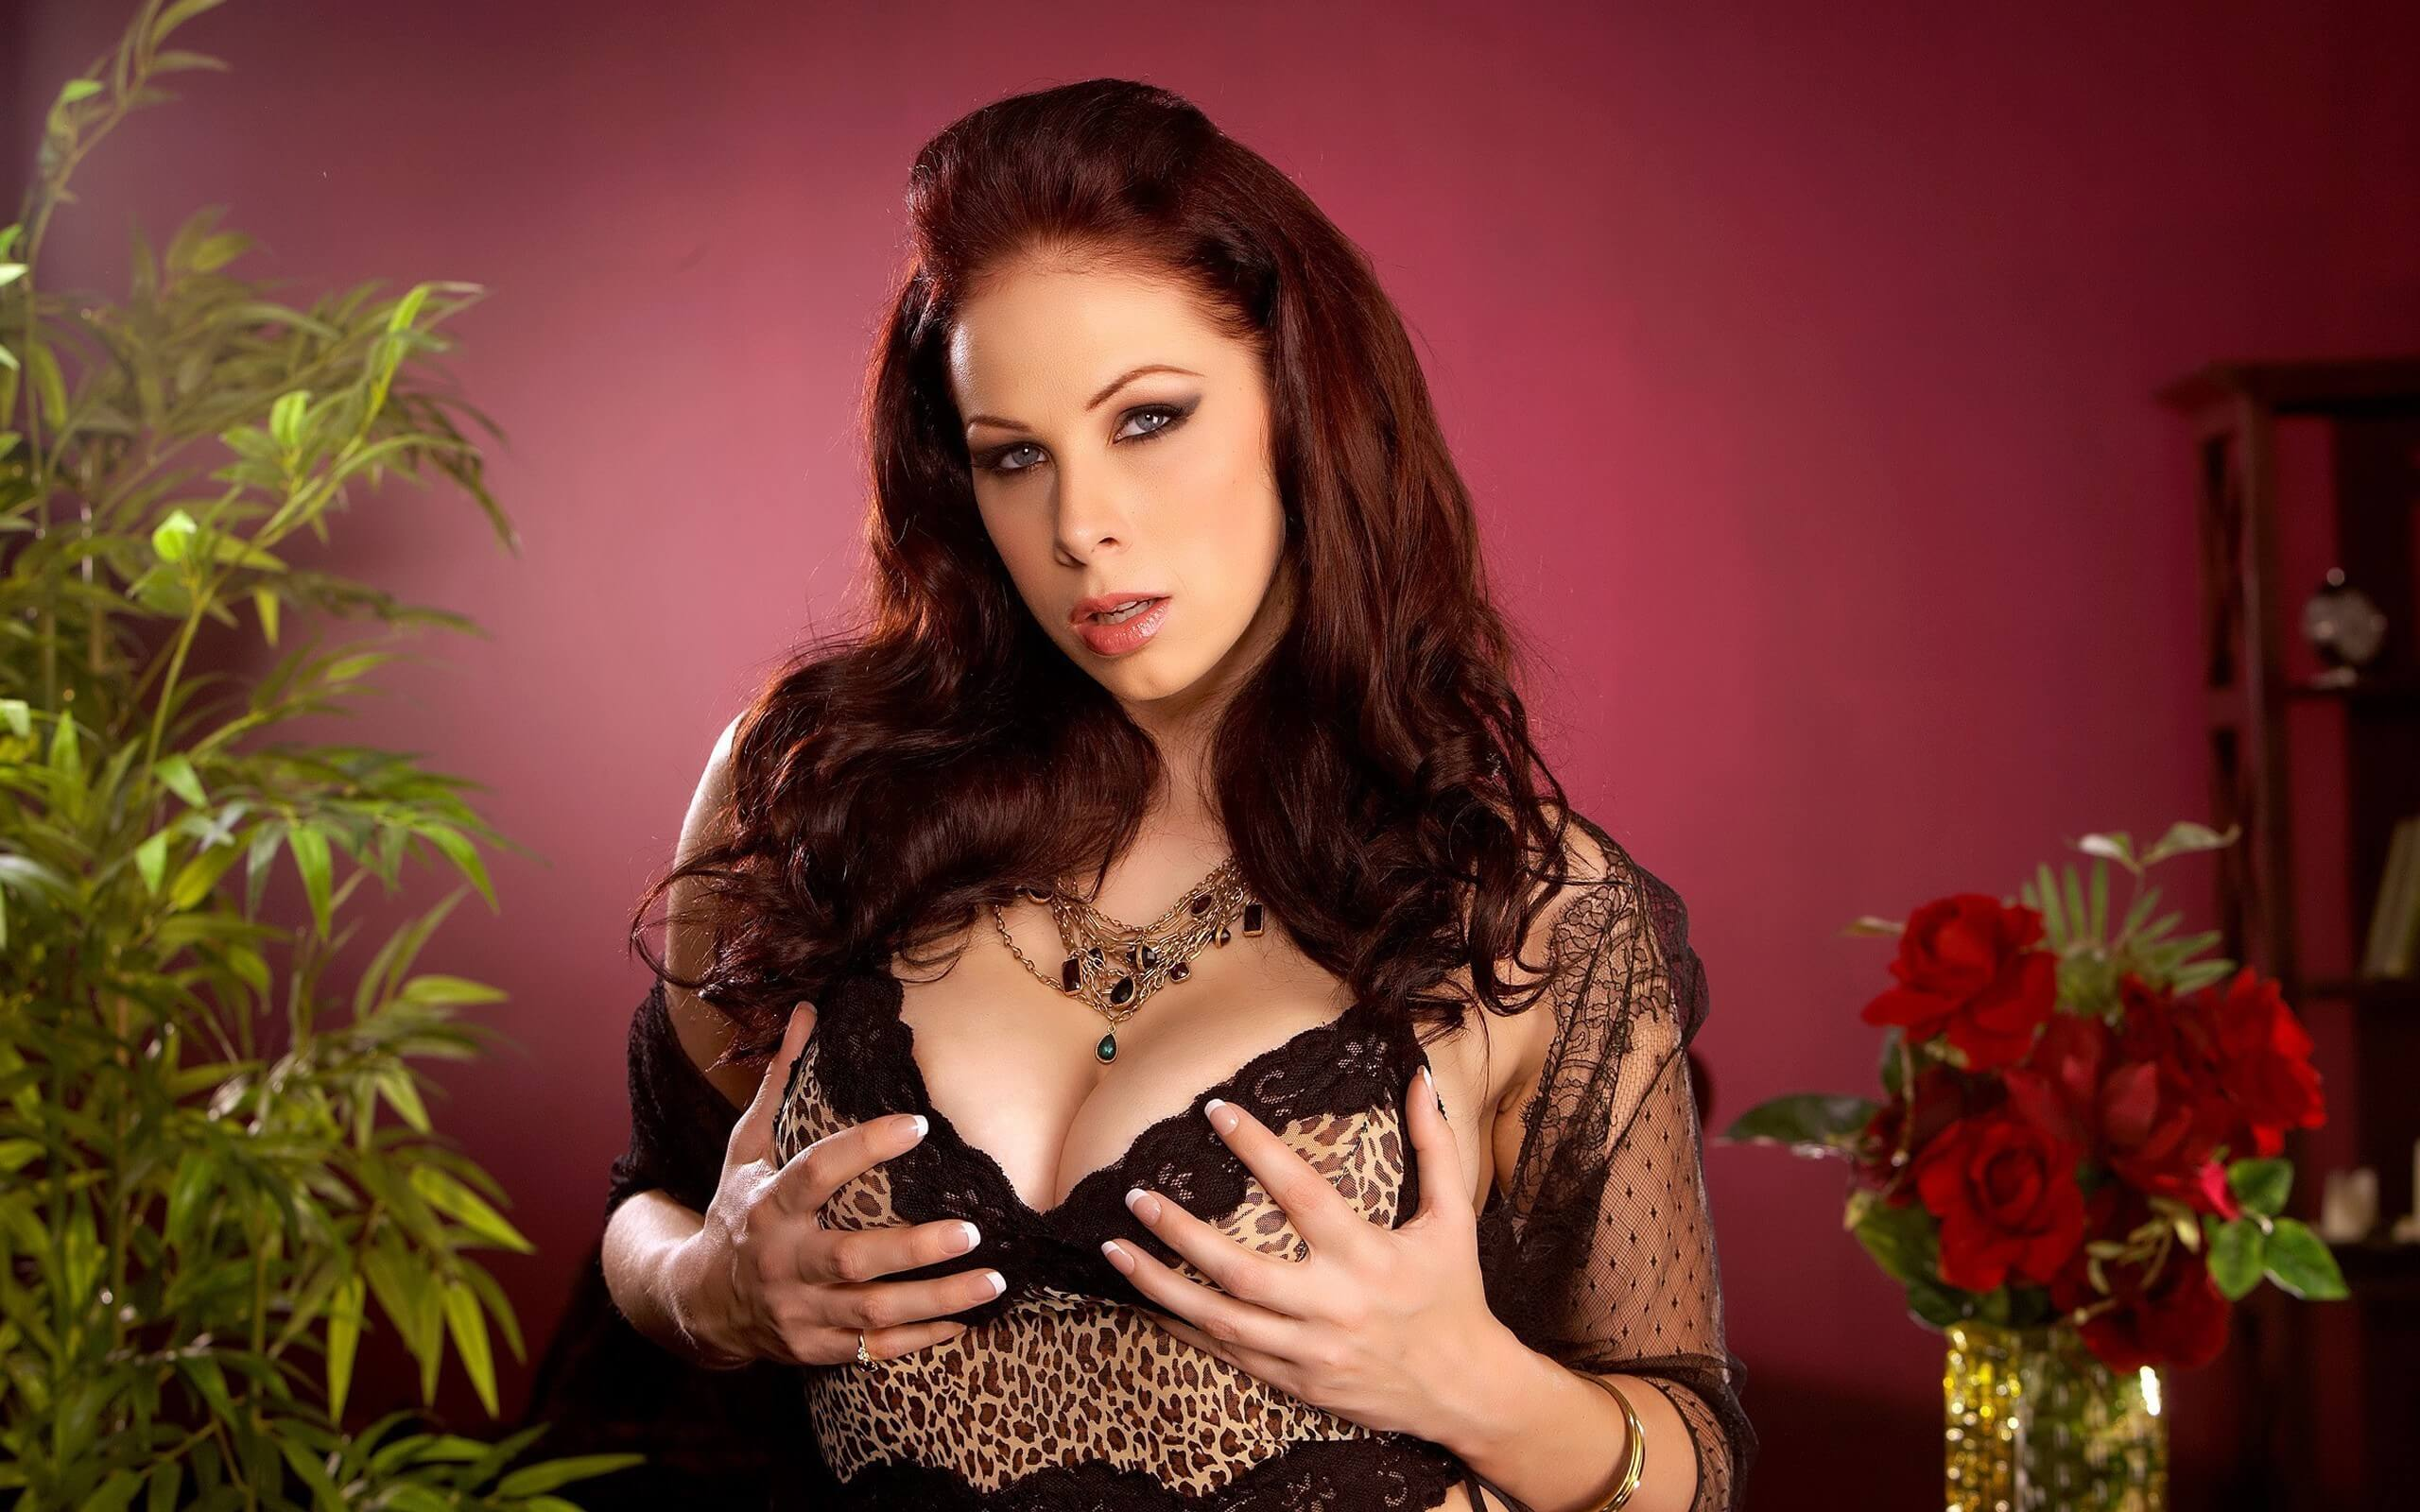 Gianna Michaels Wallpapers 2